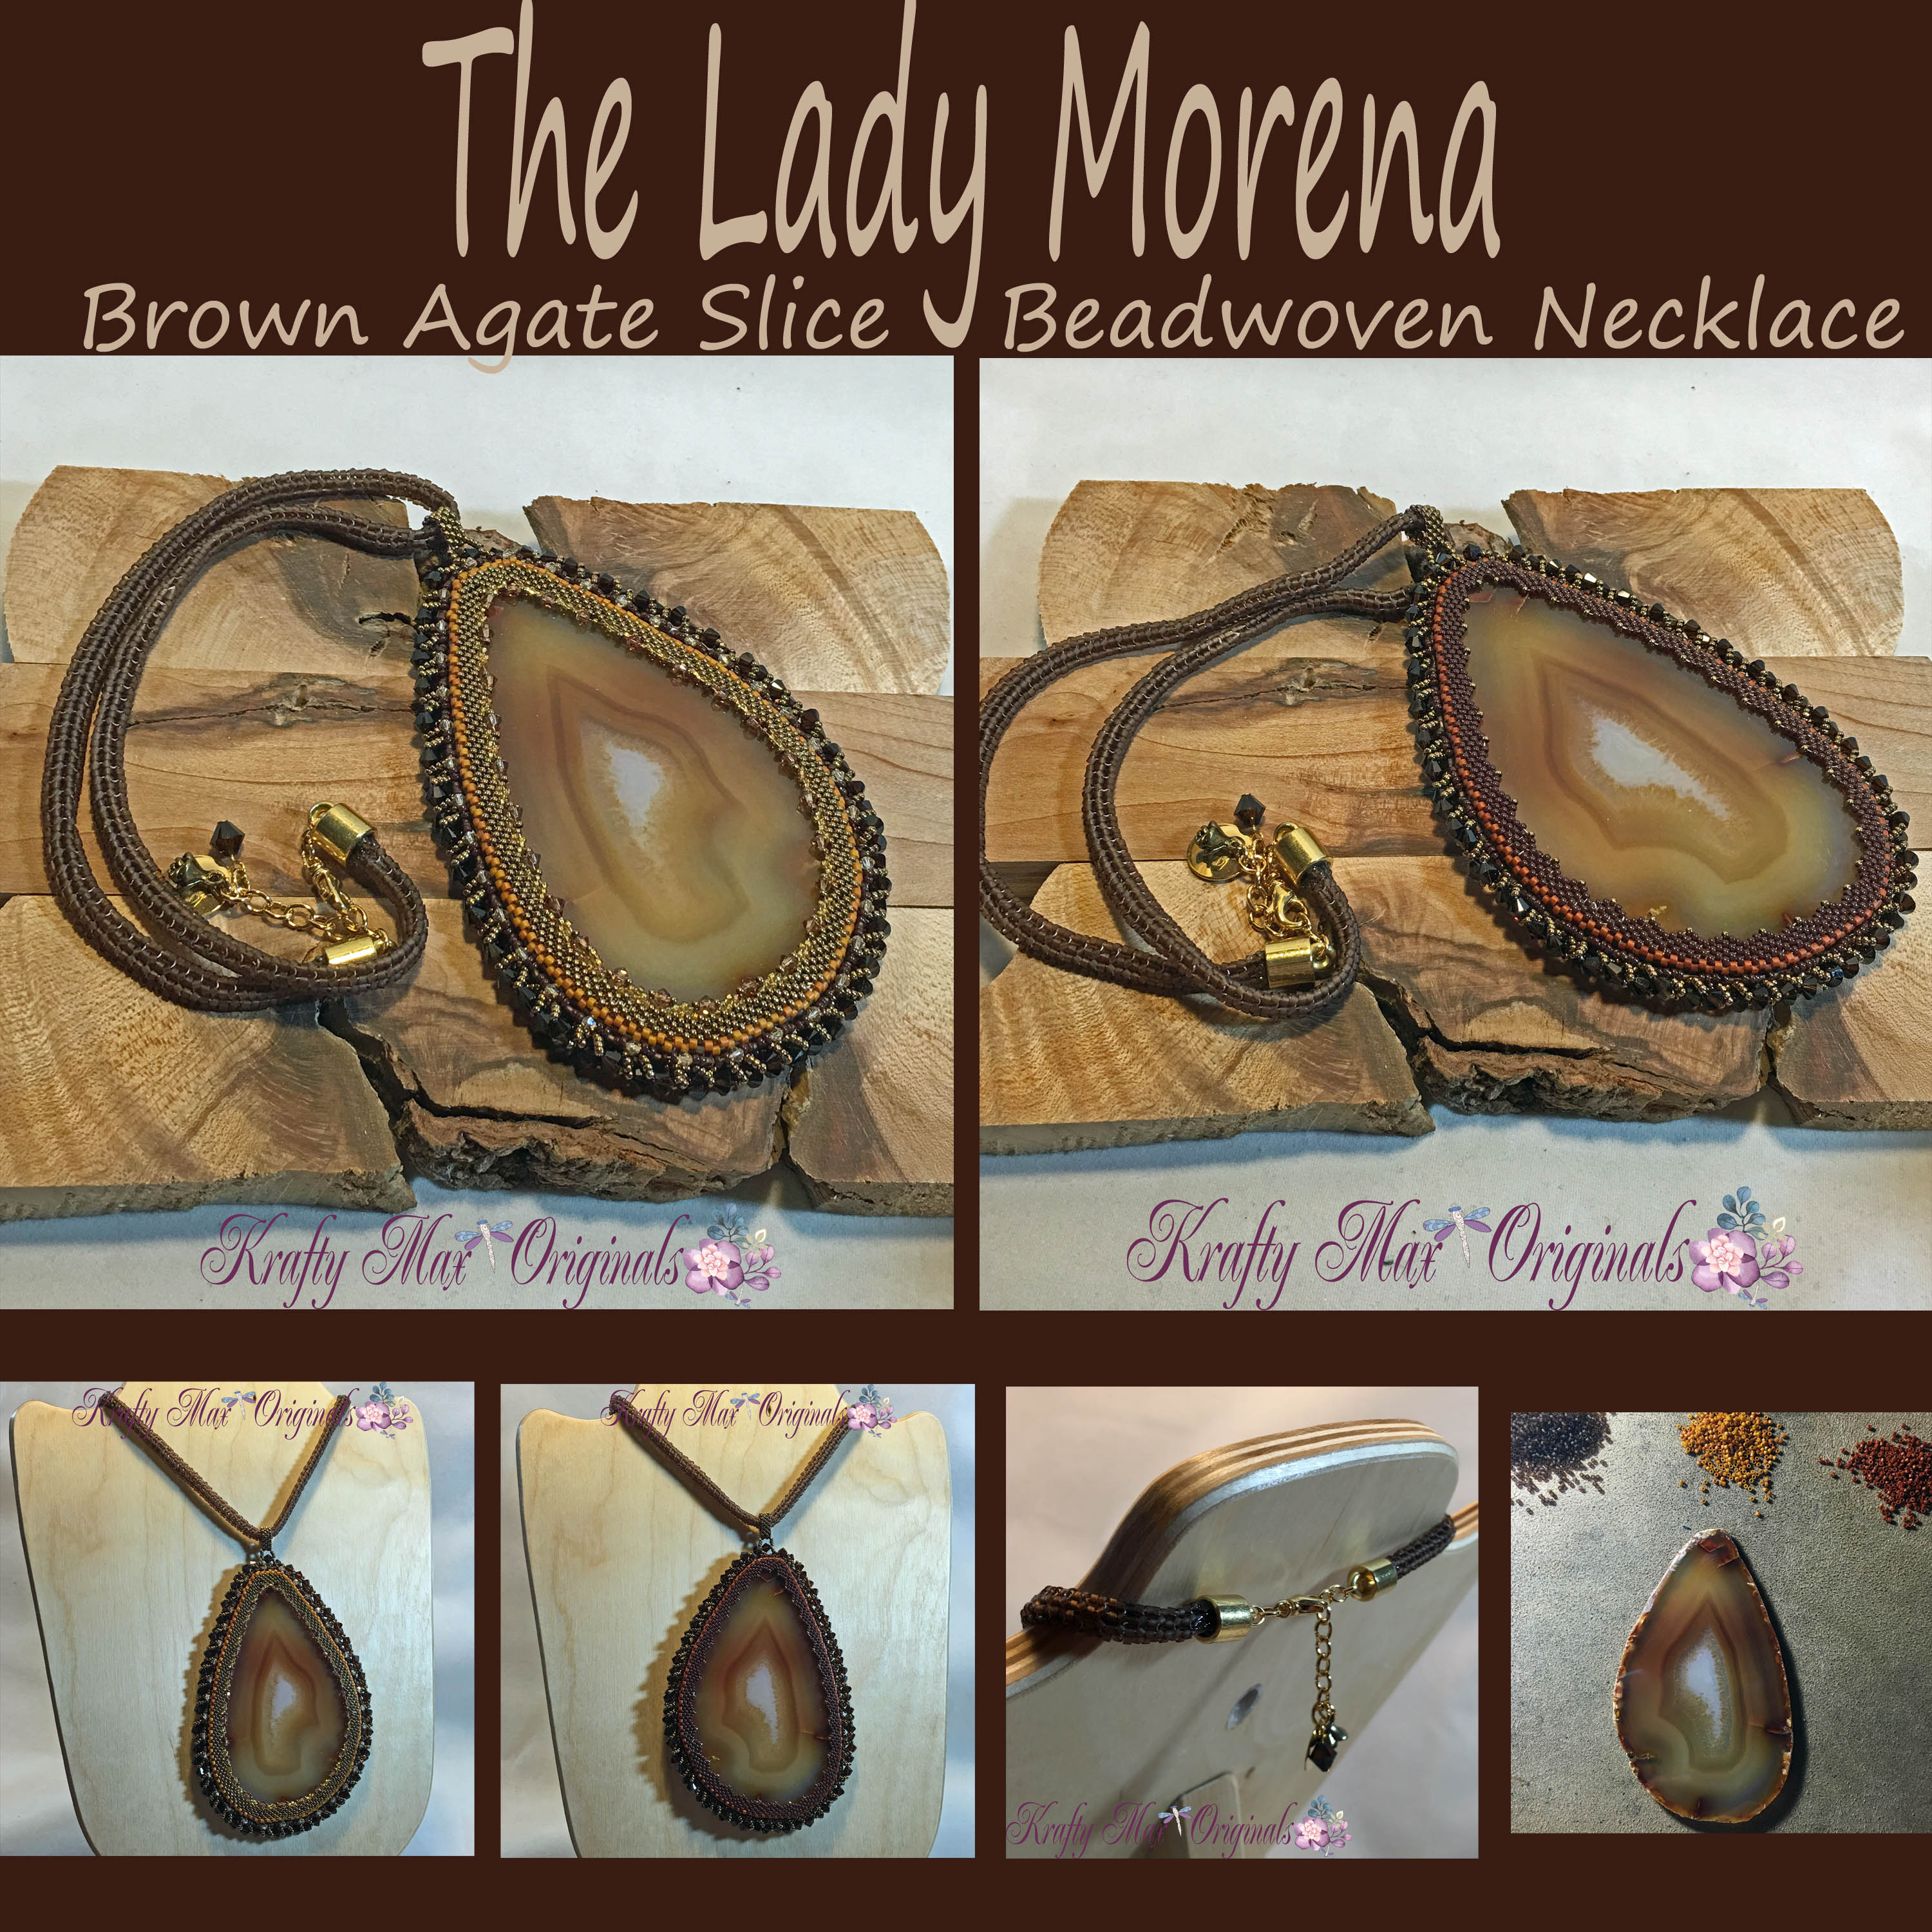 The Lady Morena – Brown Agate Slice Beadwoven Necklace